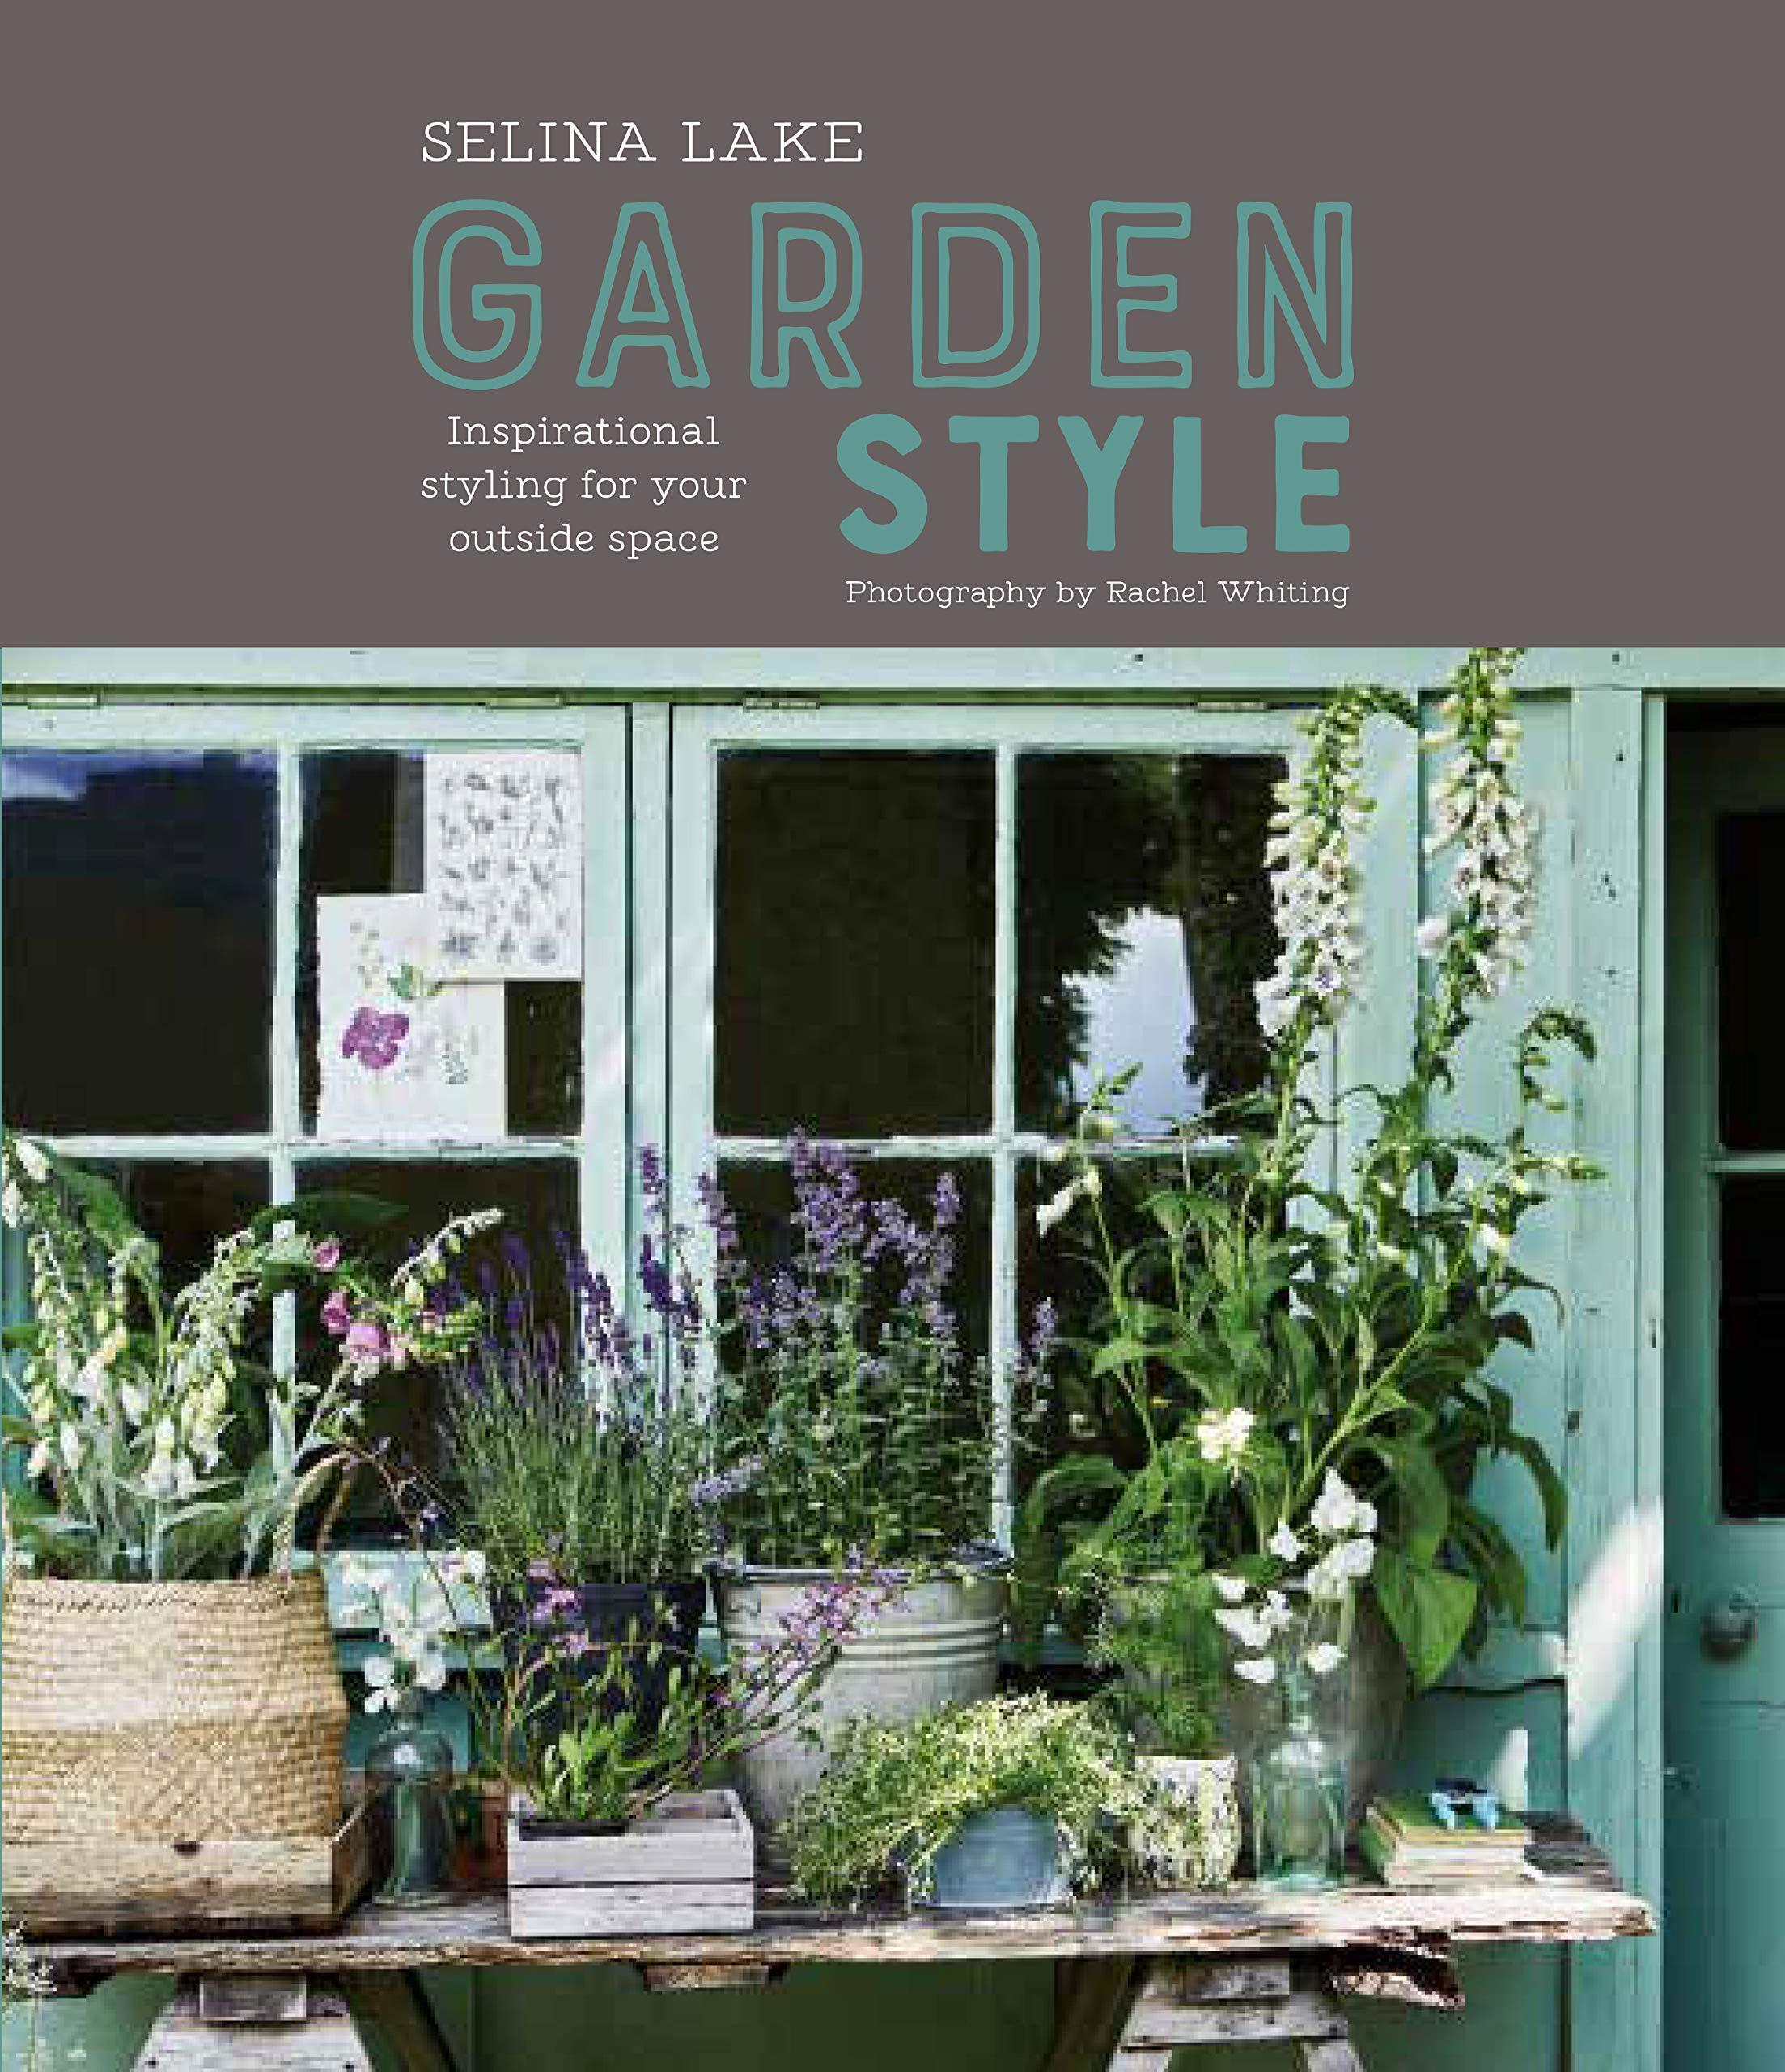 Image OfGarden Style: Inspirational Styling For Your Outside Space